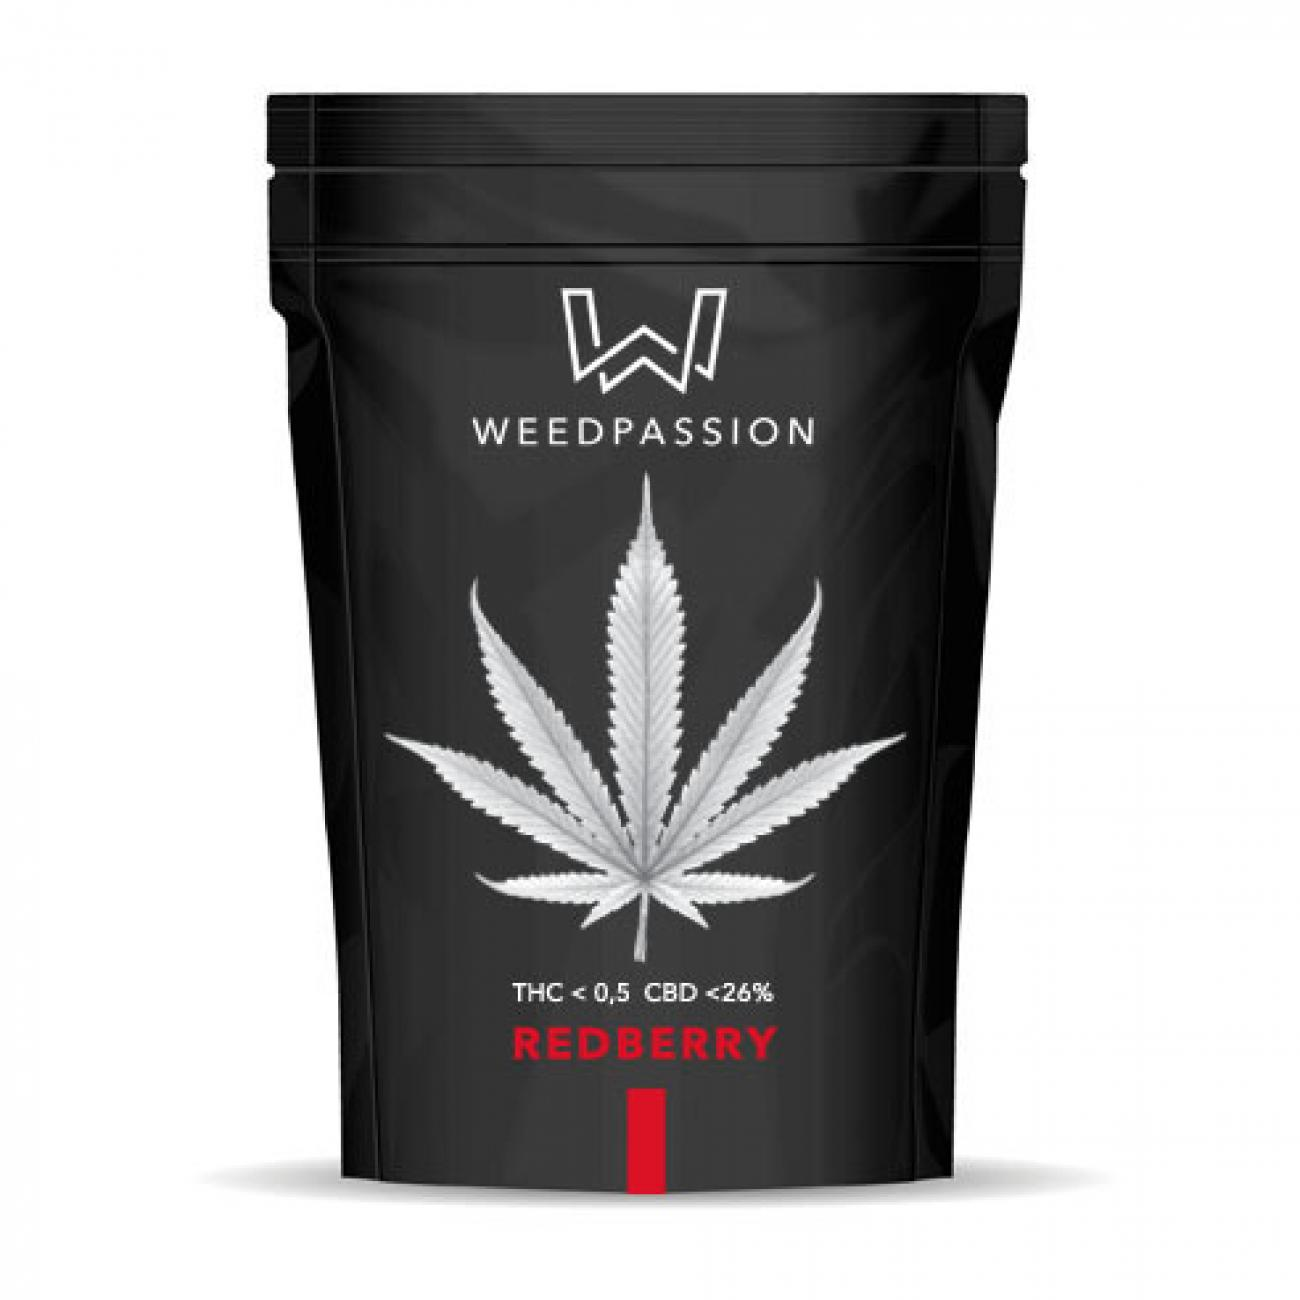 Weedpassion Redberry 26% cbd 1gr.